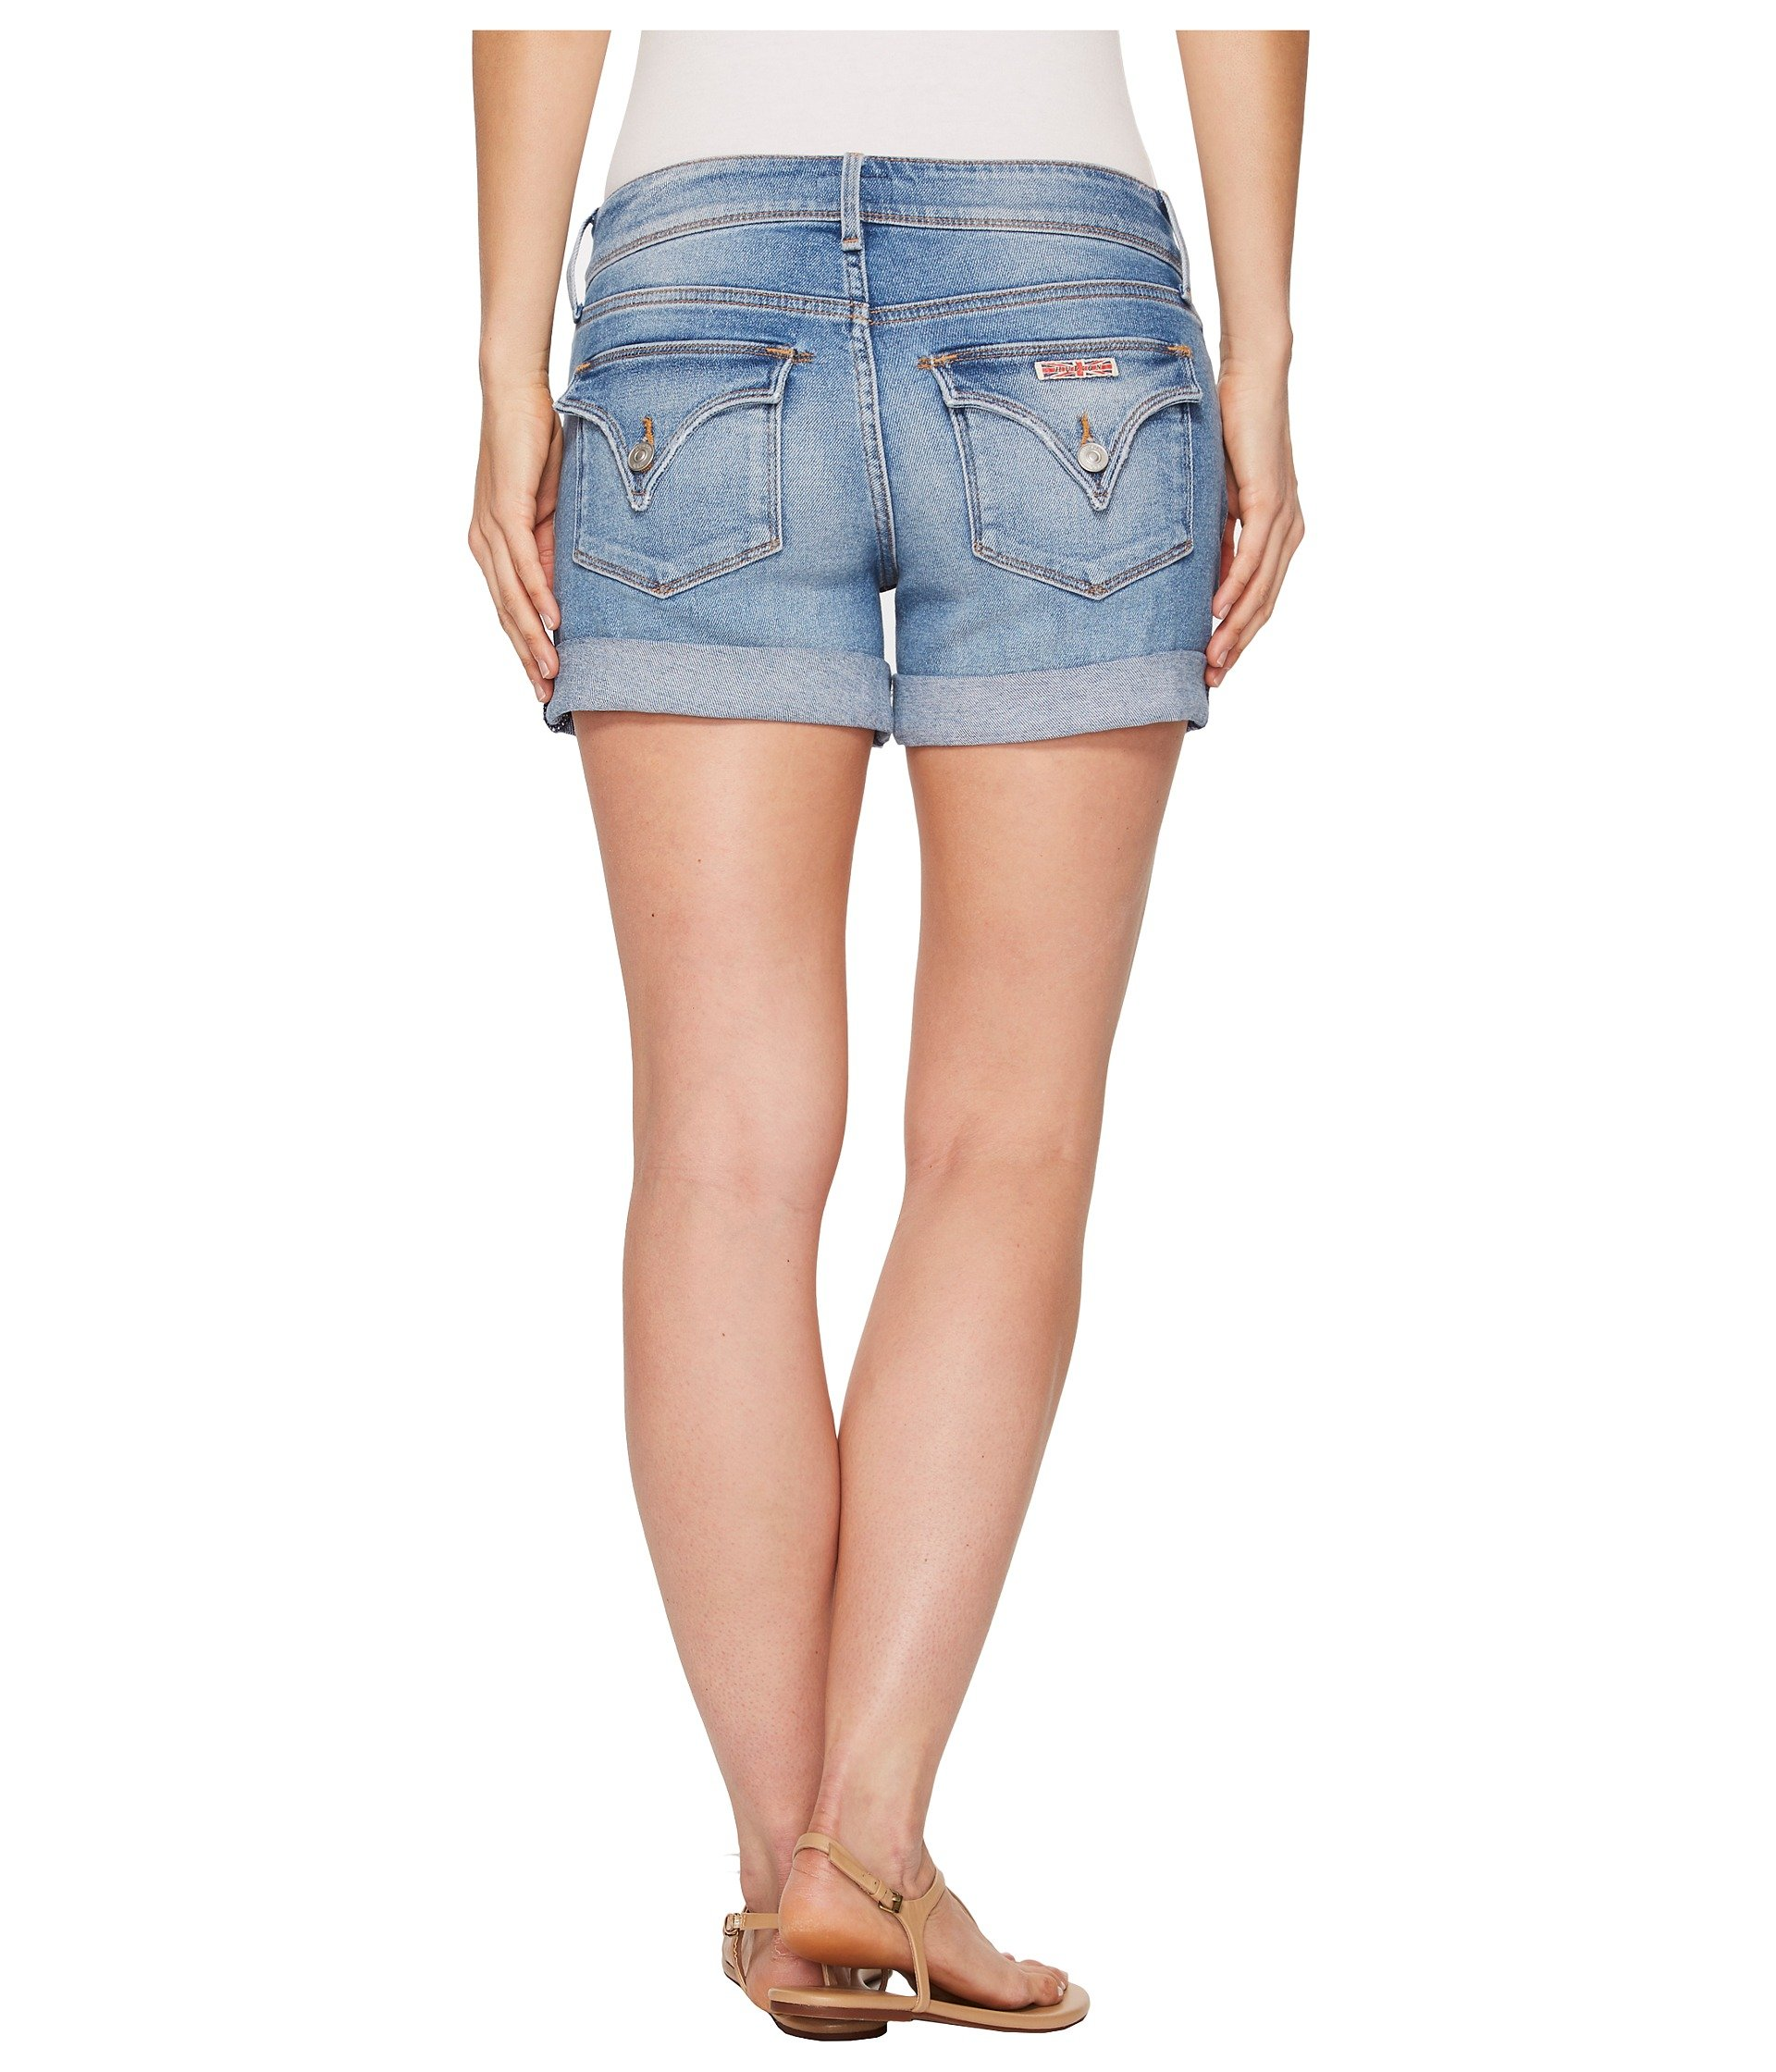 Hudson Jeans Women's Croxley Mid Thigh Flap Pocket Short, Rolling Hills, 31 by Hudson Jeans (Image #4)